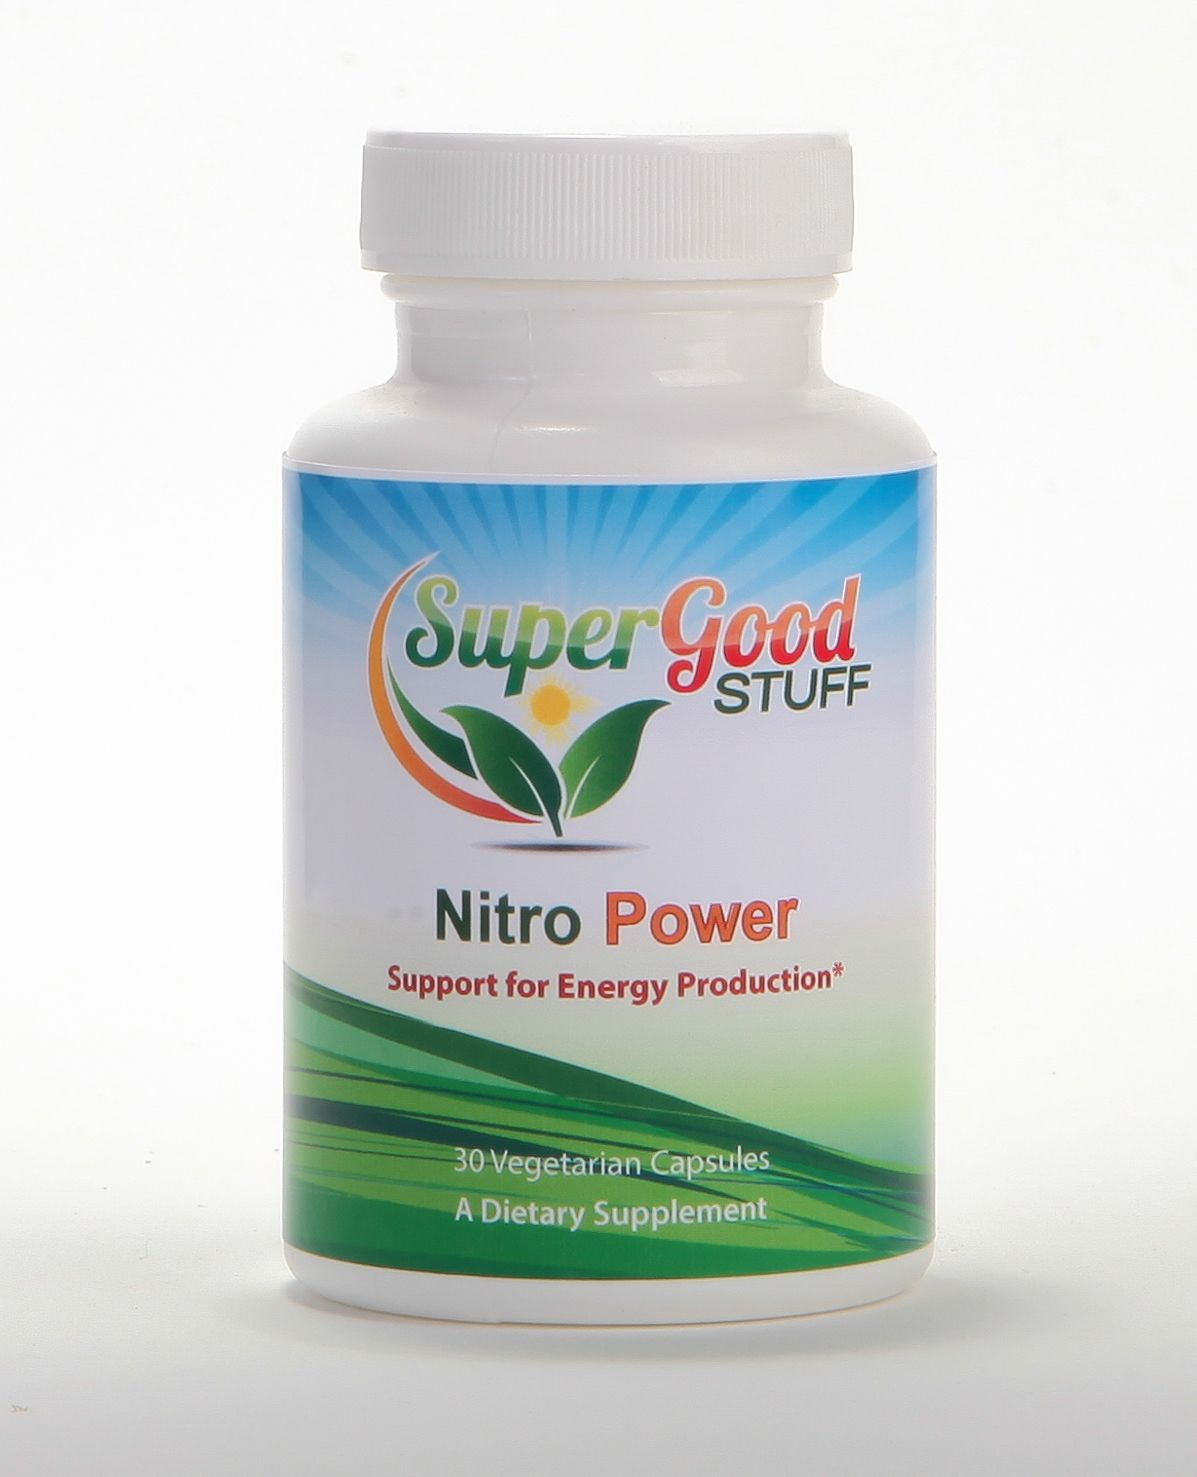 Nitro power nutritional supplements dealing with stress